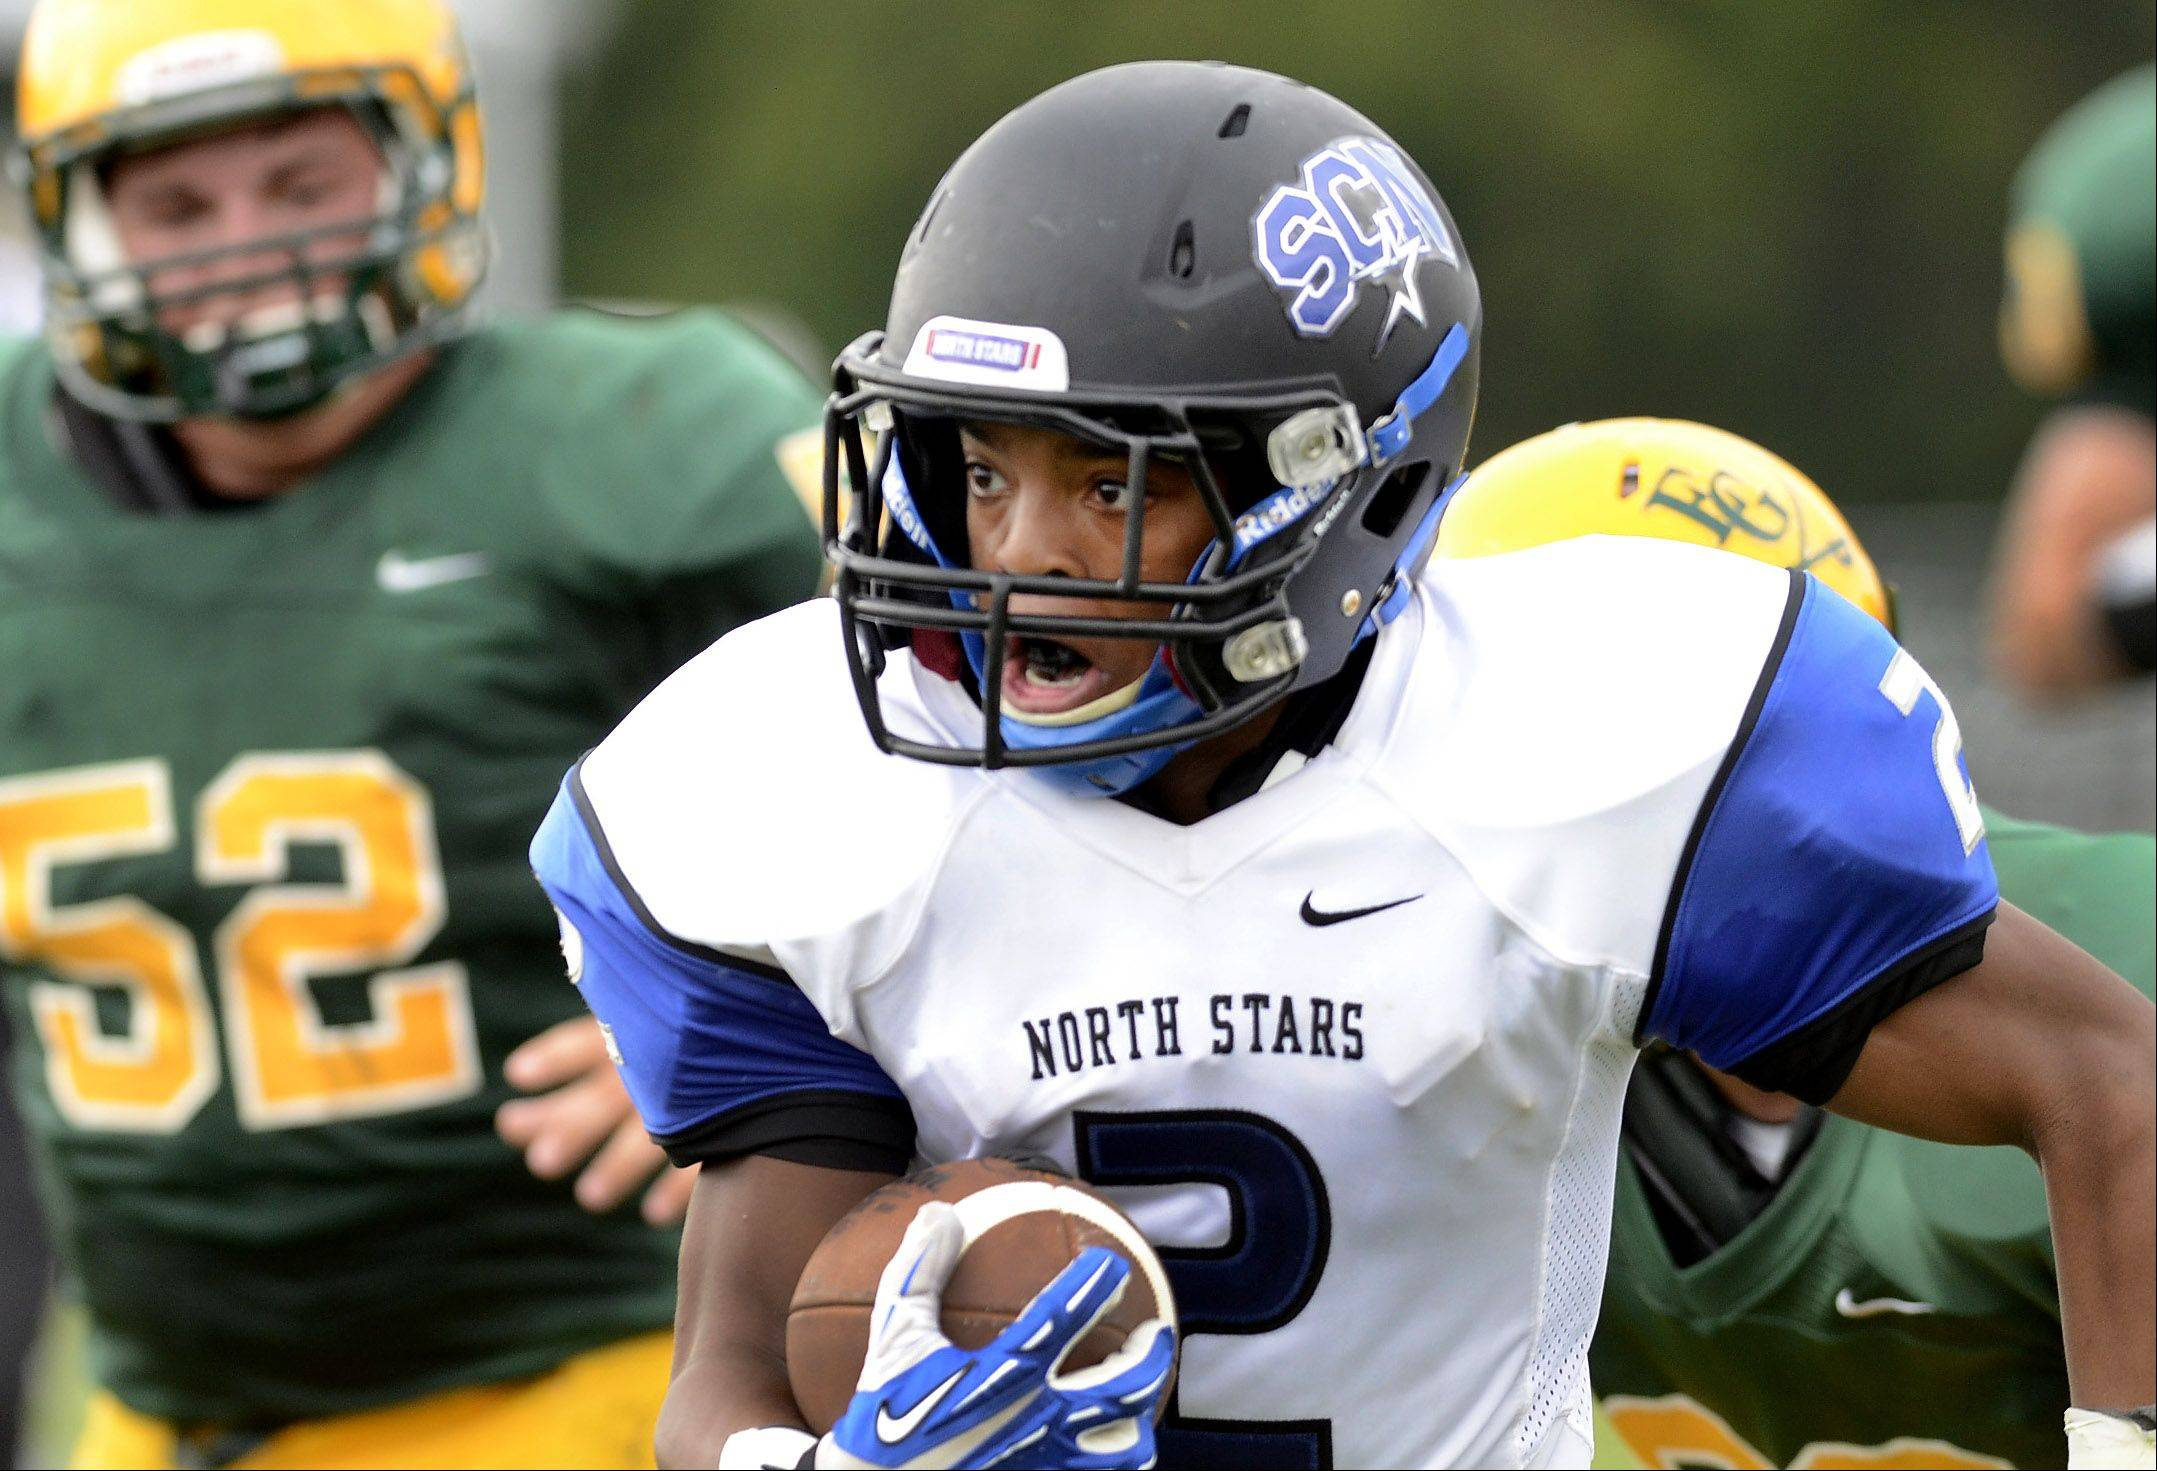 St. Charles North's Nate Newbill runs after a catch against Elk Grove during the season opener. North faces Plainfield Central tonight in a game that will be streamed live on Football Focus, powered by High School Cube.